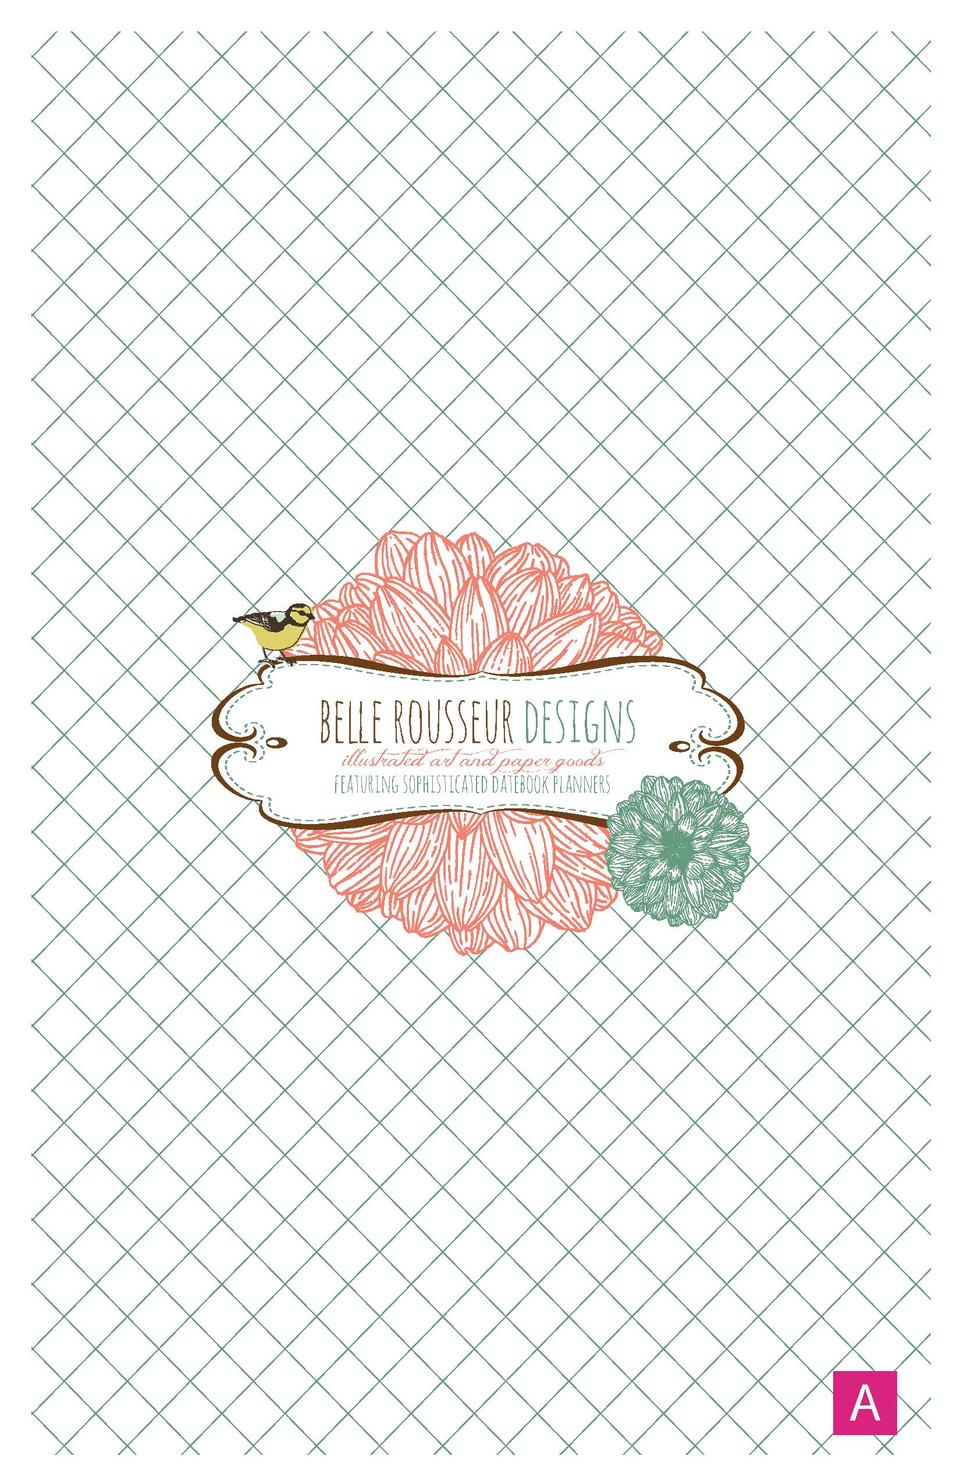 belle rousseur designs illustrated art and paper goods  featuring sophisticated datebook planners  A